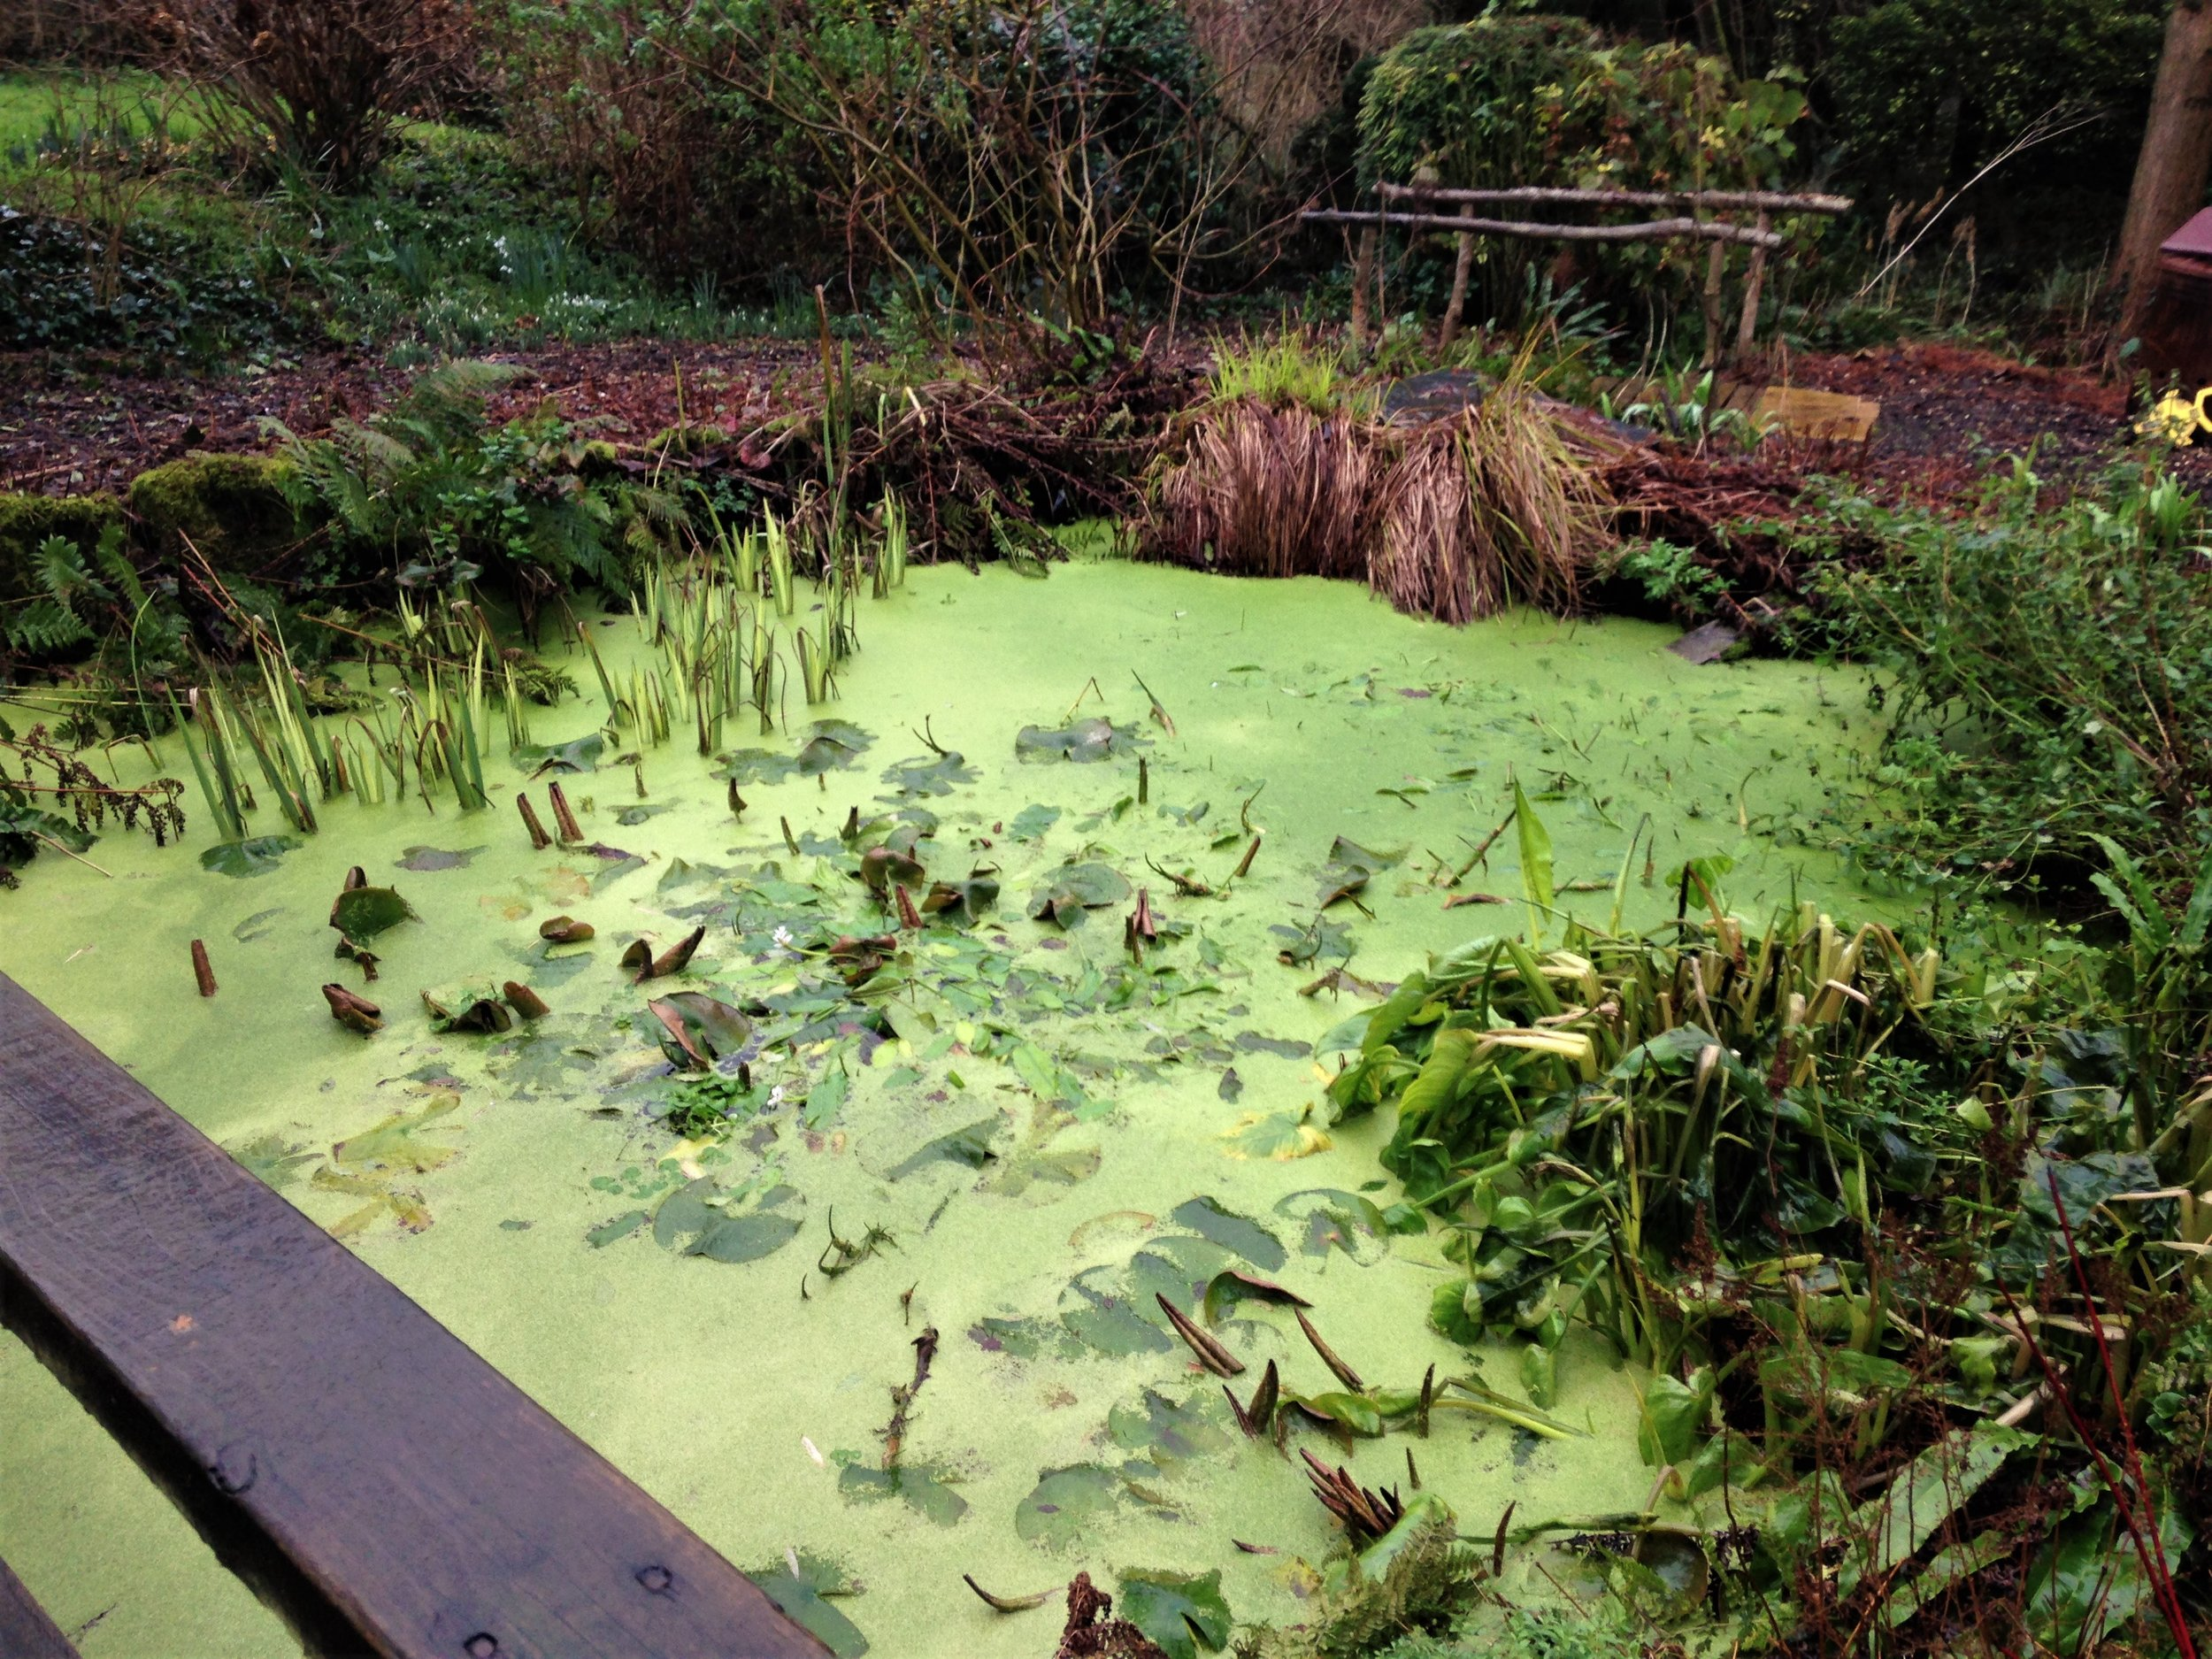 Duck weed smothering a wildlife pond